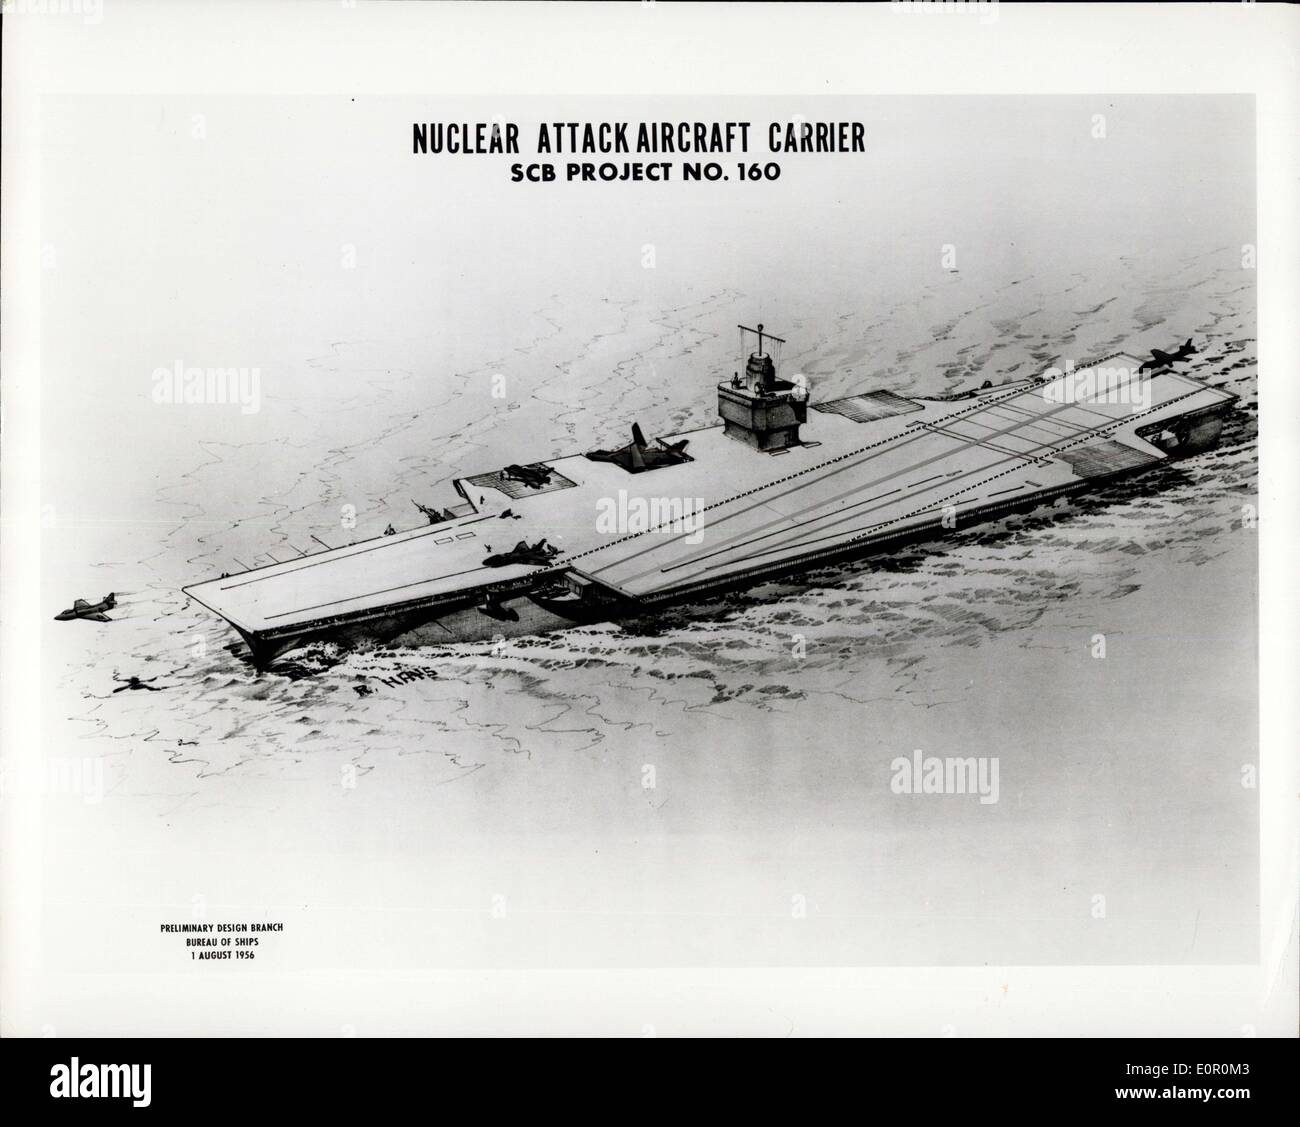 Aug. 02, 1957 - Artist's Concept Of The Navies Proposed Nuclear-Powered Carrier (CVA (N)). CVA(N) Will Represent The Most Modern Of A Long Series Of Attack Carriers, Starting With The USS Langley In 1922, One Of The More Important Features Of The CVAN Will Be Almost Unlimited Steaking Endurance At High Speed. Operational Flexibility Will Be Increased Also, As A Result Of This Capability, Since High Speeds Can Be Maintained Without Regard To Conserving Fuel Oil; Offensive And Defensive Capabilities Will Be Improved And Replenishment Requirements Such Rejuced - Stock Image